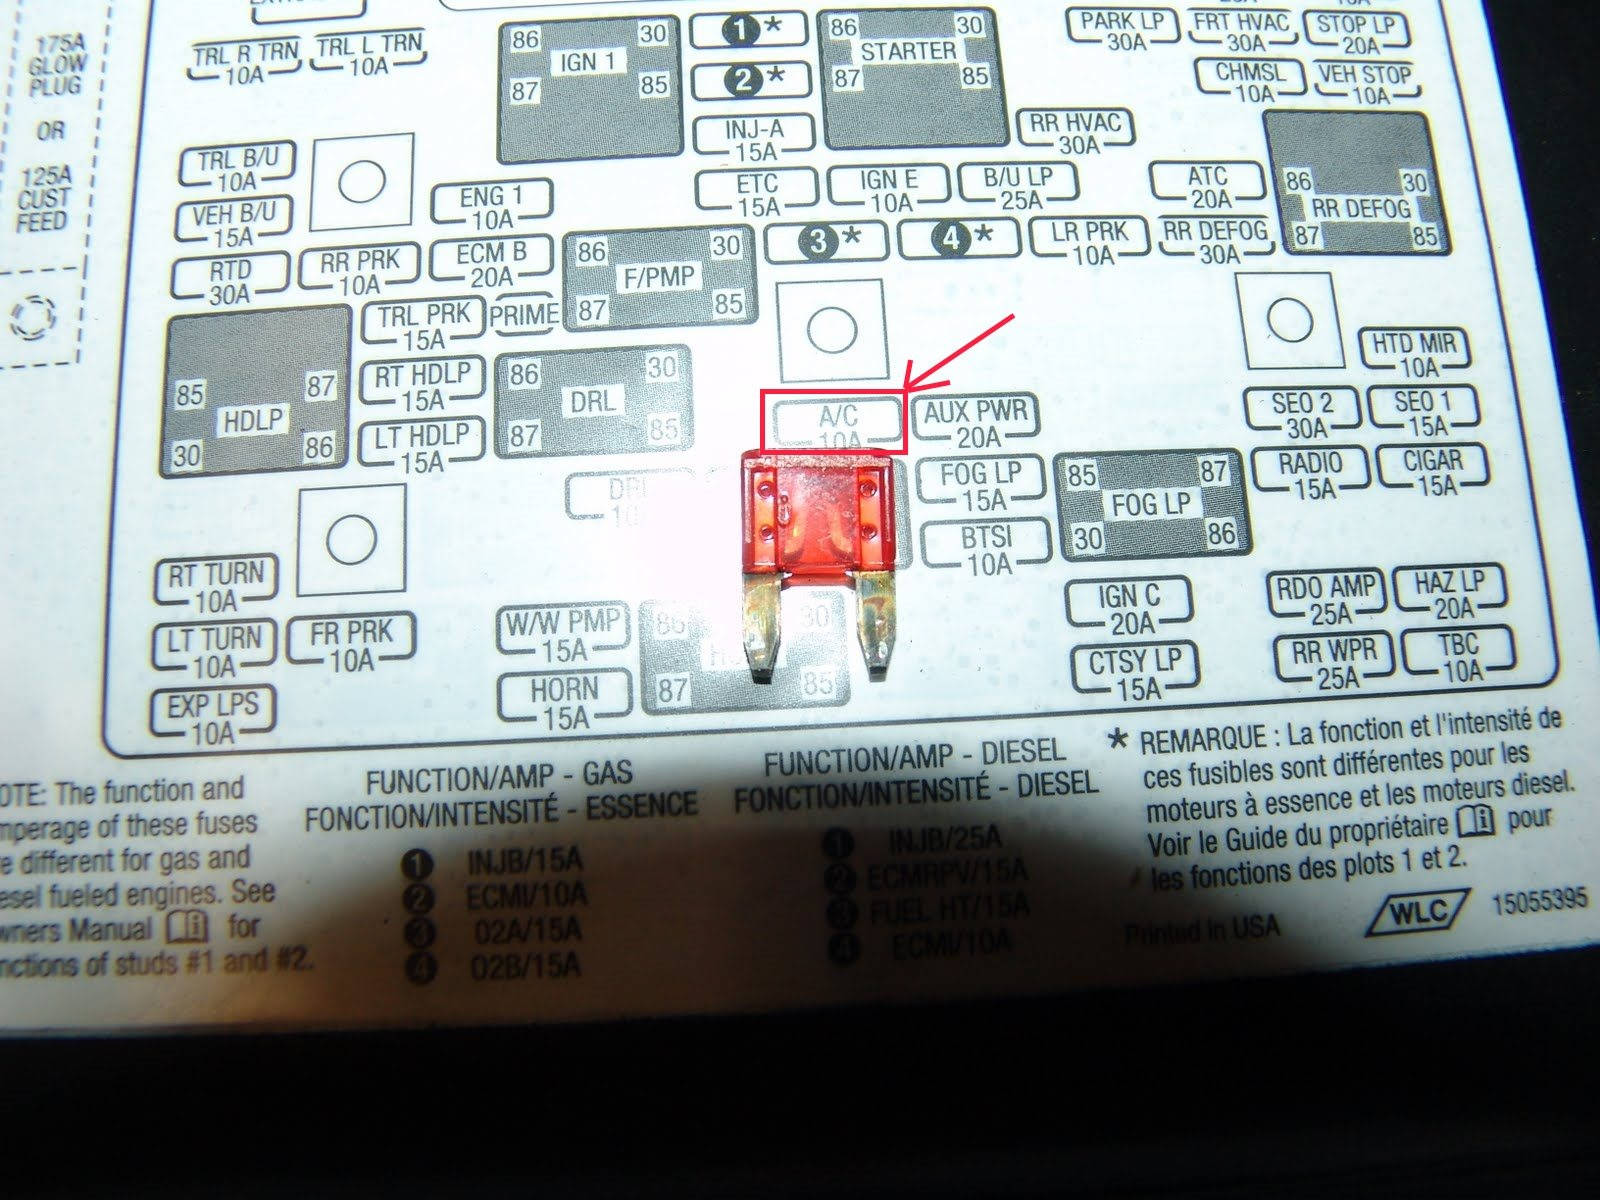 2005 Astro Van Fuse Box Layout Wiring Diagram Data Tahoe Location 87 Suburban Library 95